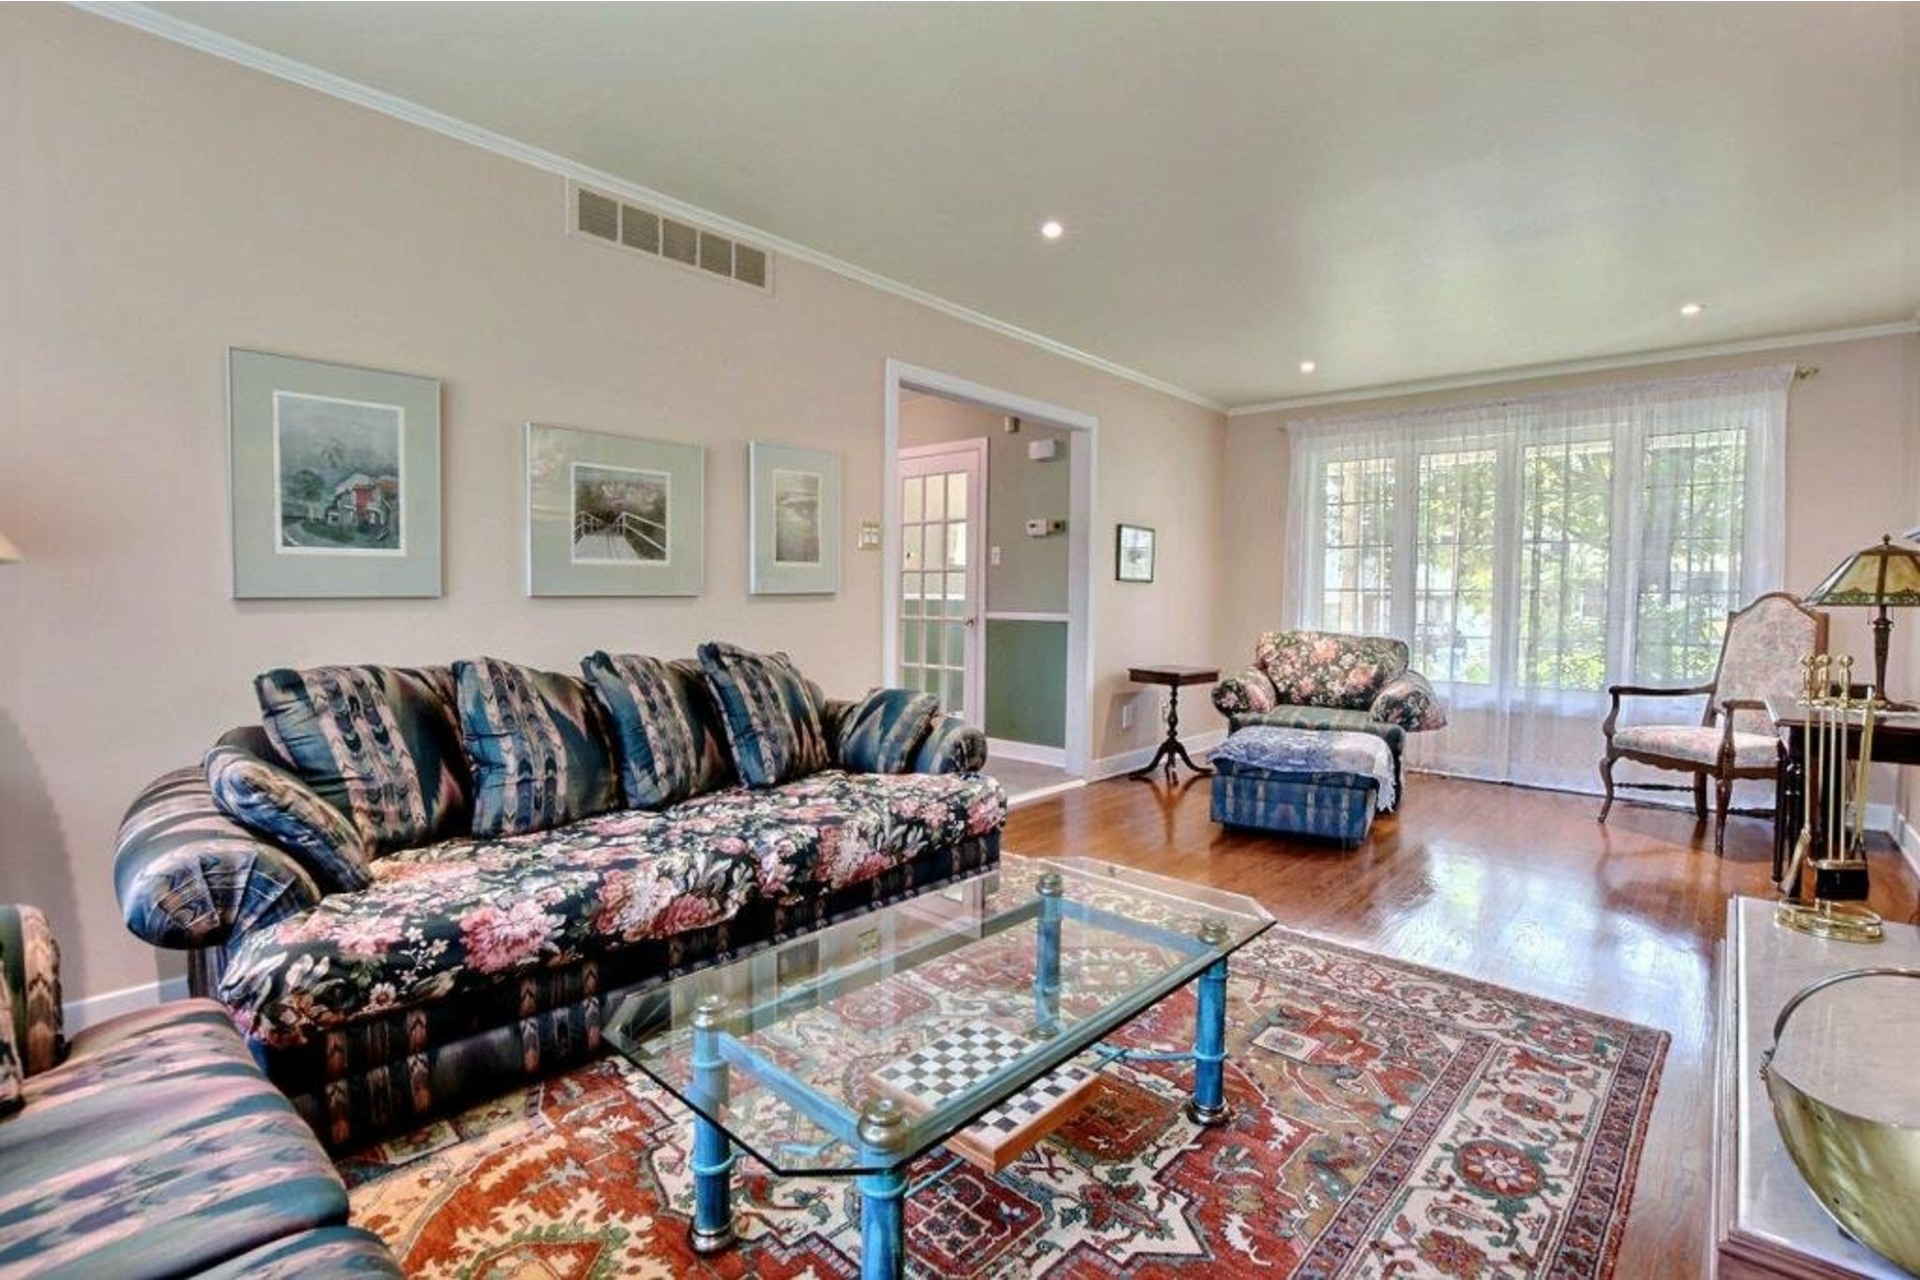 image 4 - House For rent Beaconsfield - 11 rooms